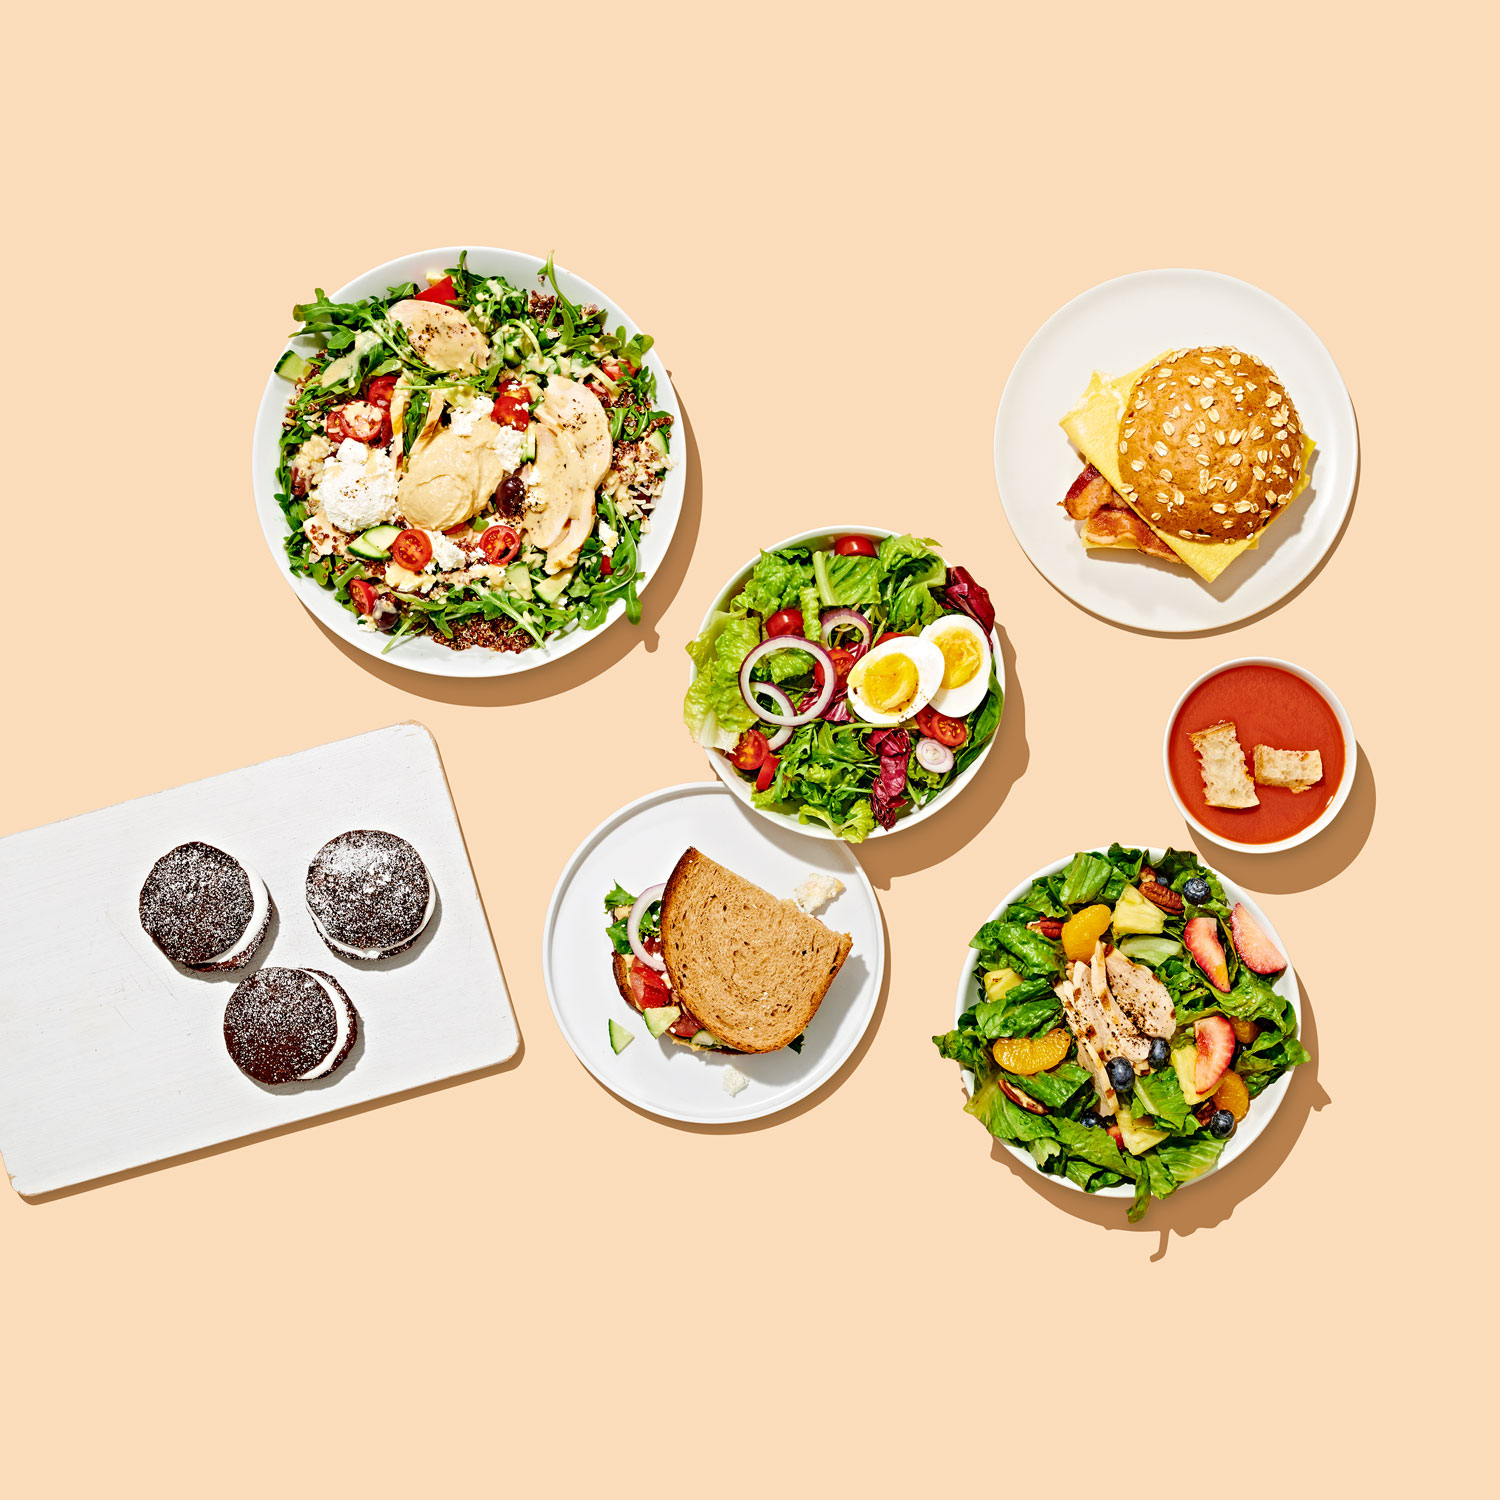 The 5 Best Picks at Panera